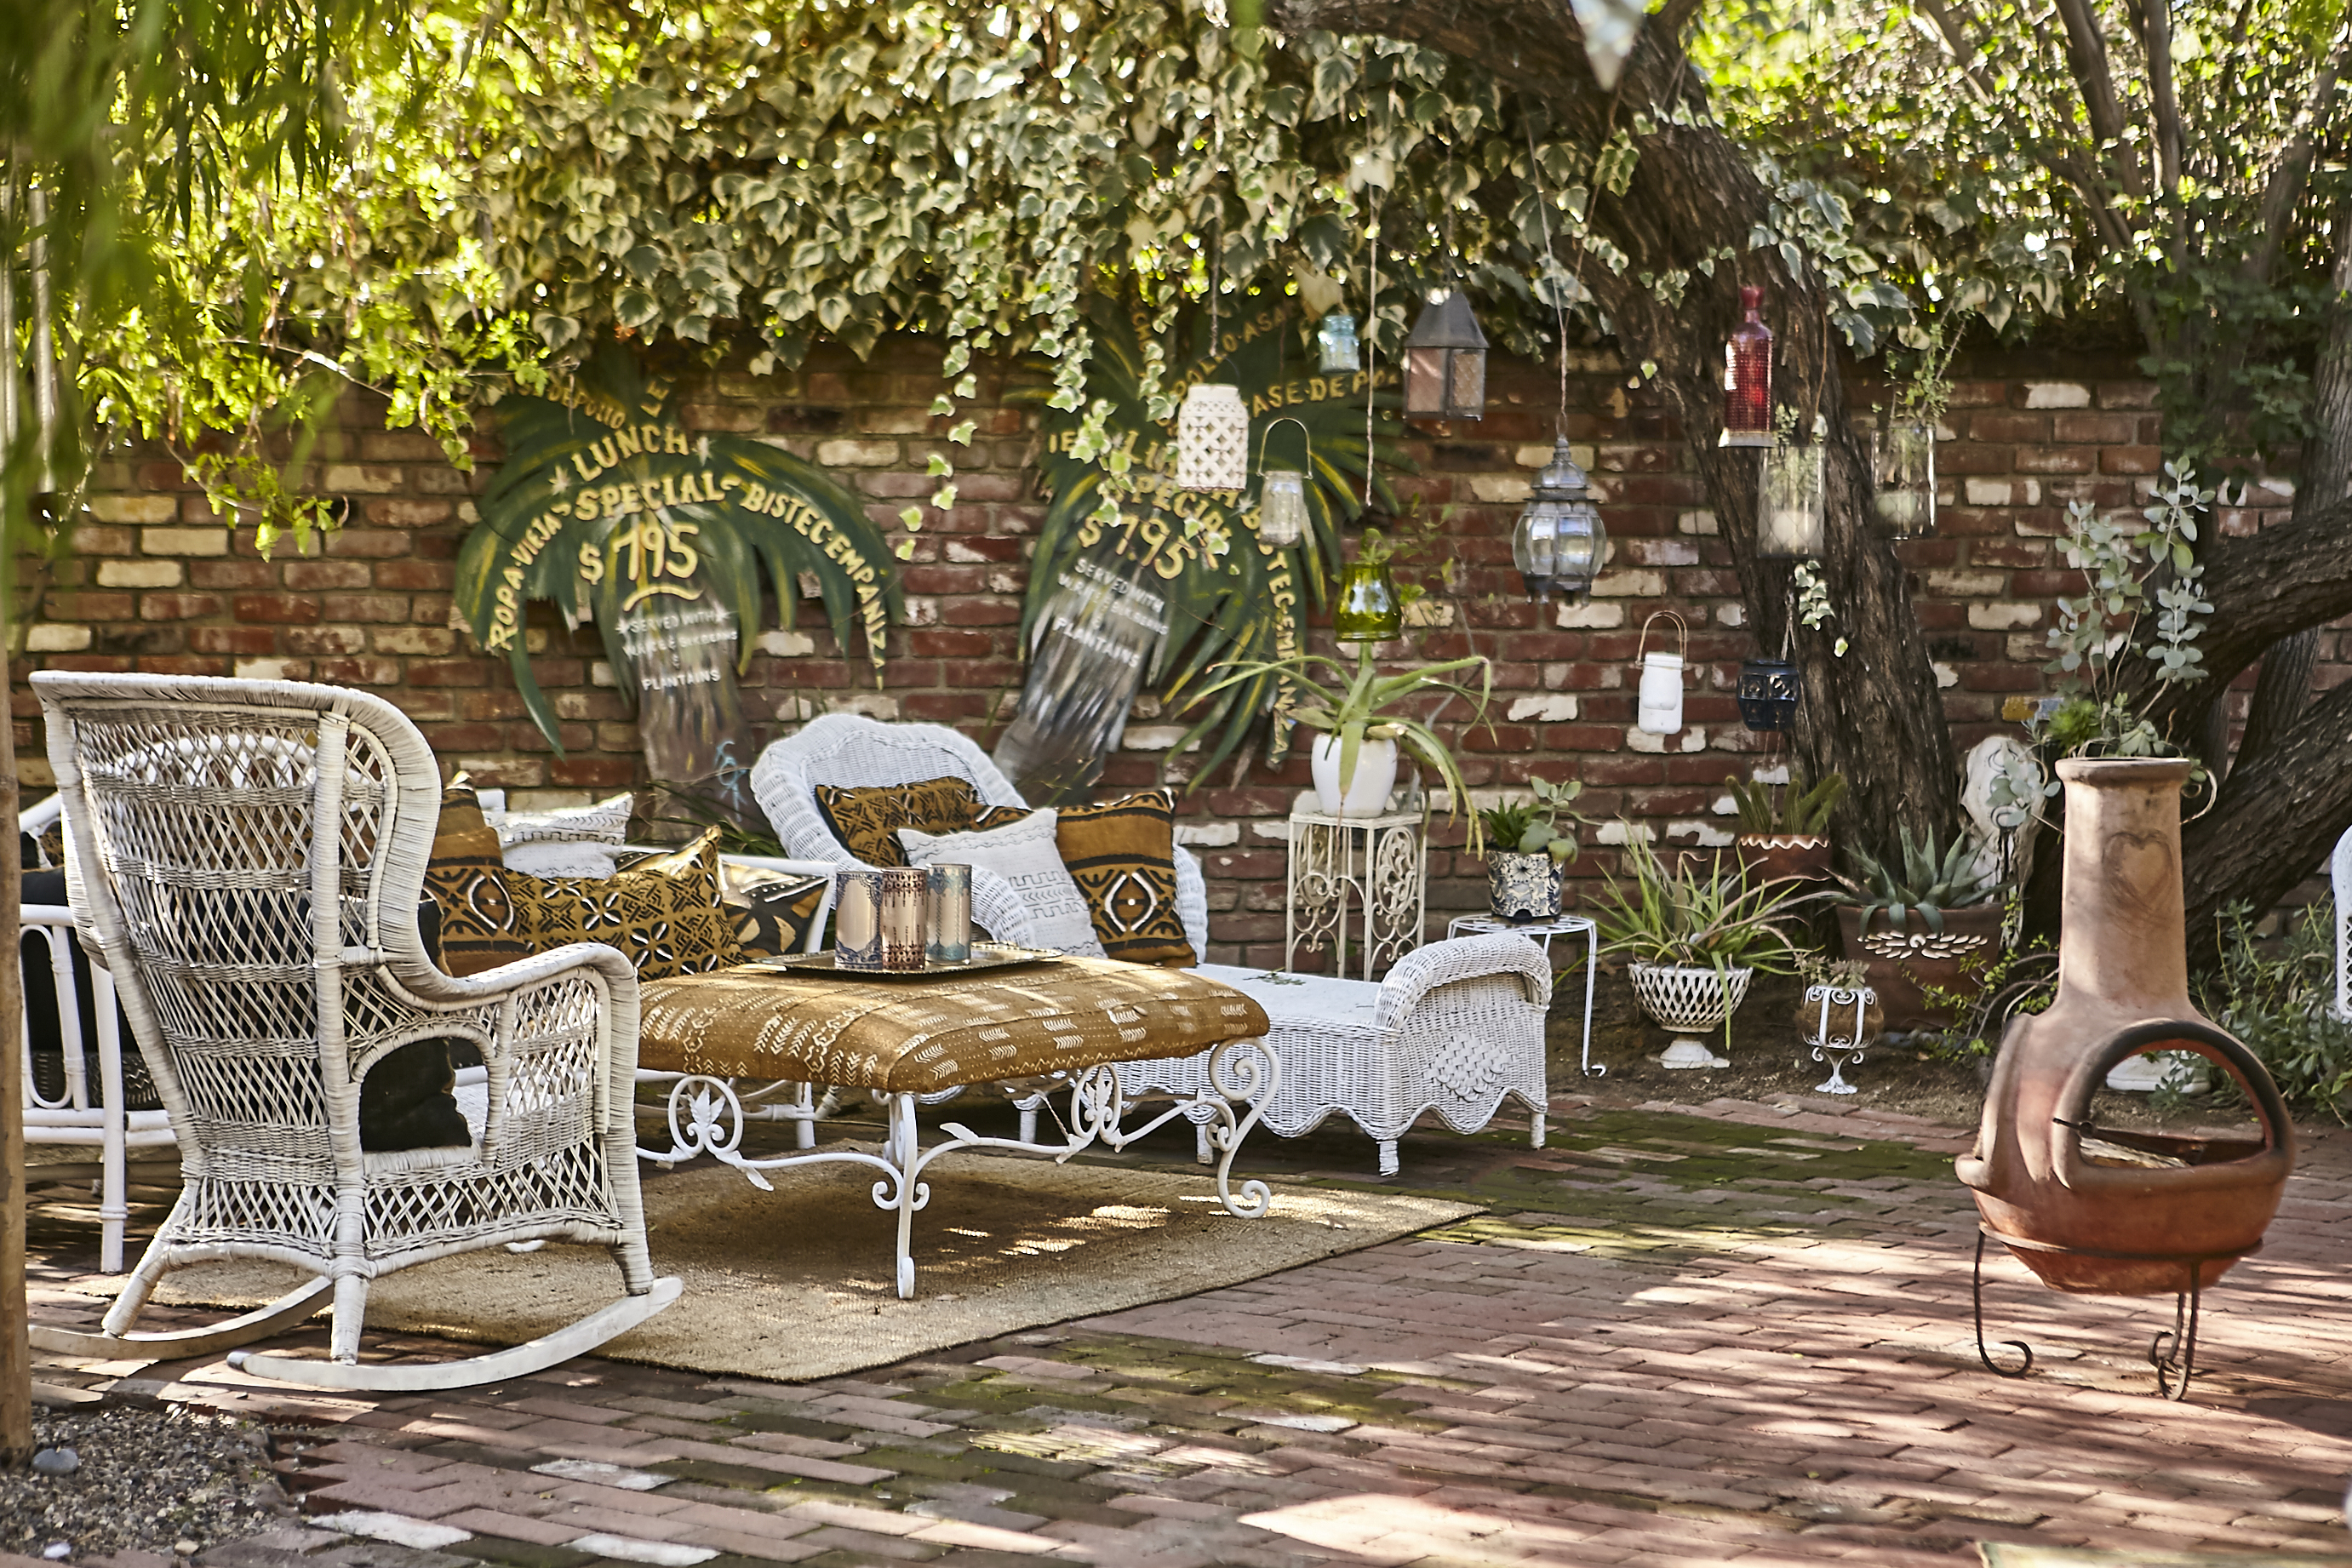 Bohemian Ranch Style Home With Yoga Studio Eclectic Outdoor Space And Moroccan Lounge Valley Village Ca Production Peerspace